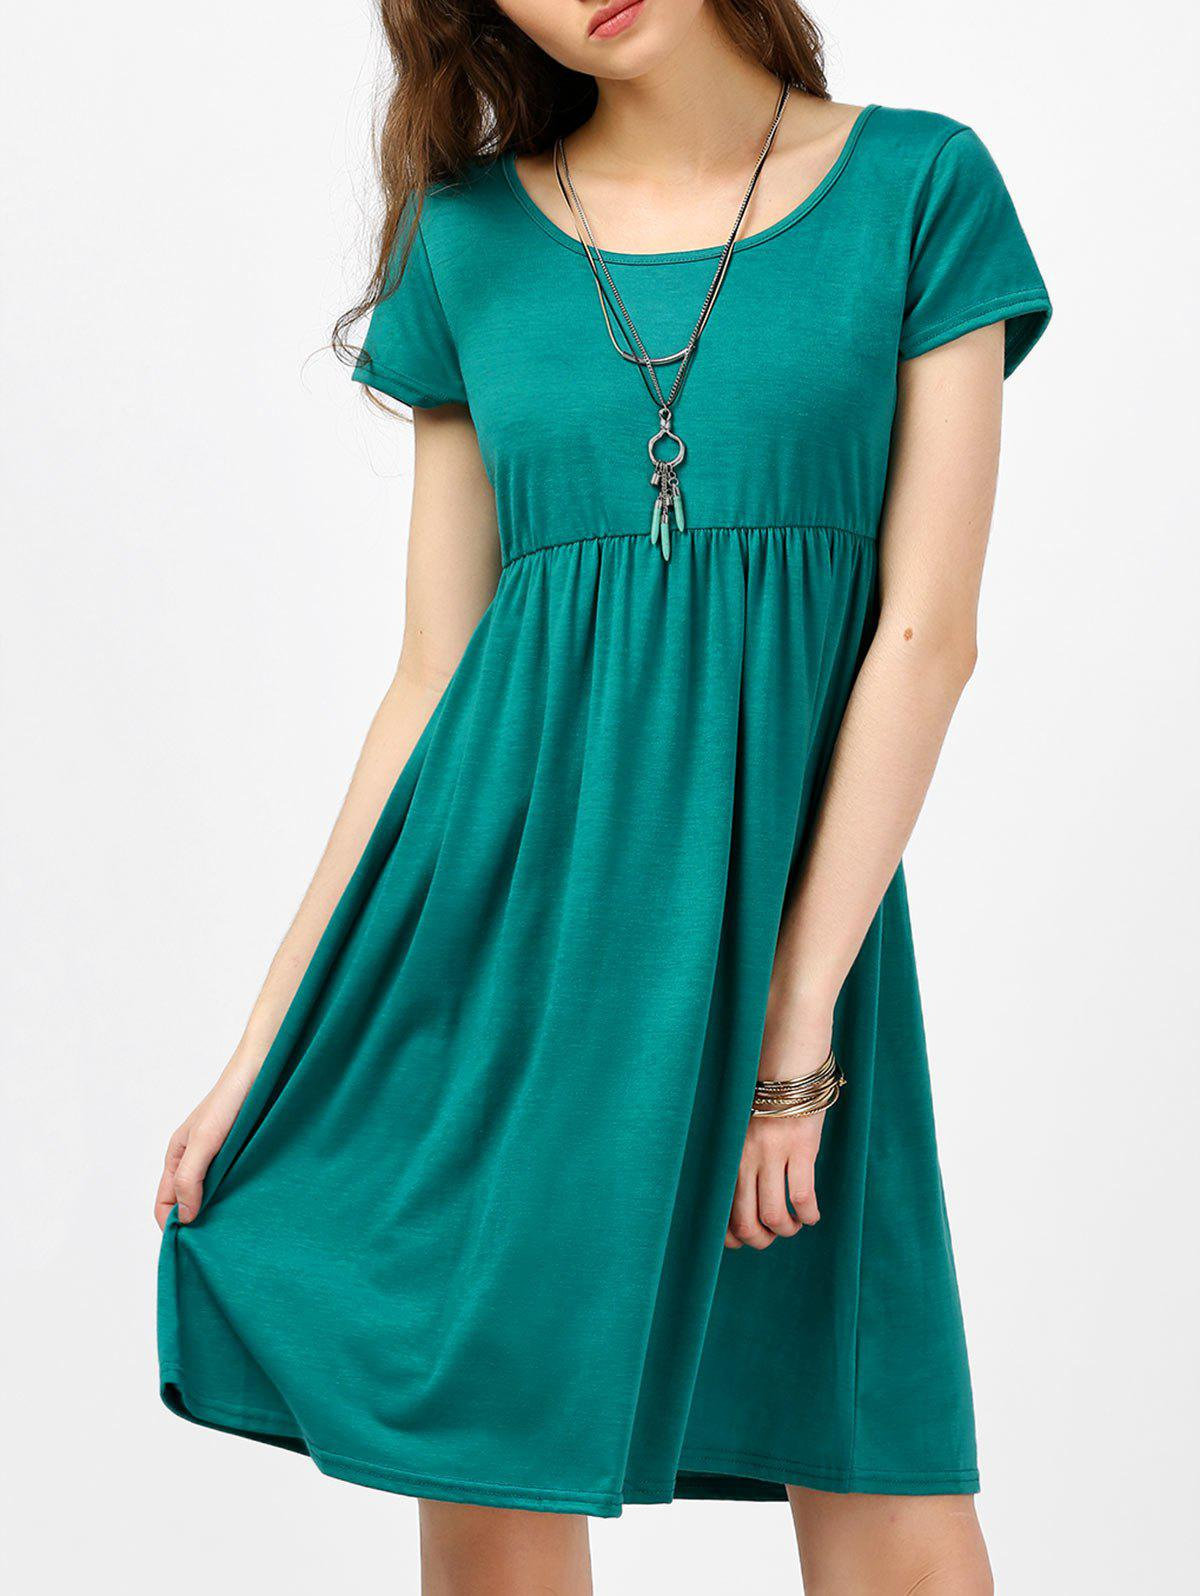 Scoop Neck High Waist Fit and Flare Dress - GREEN M